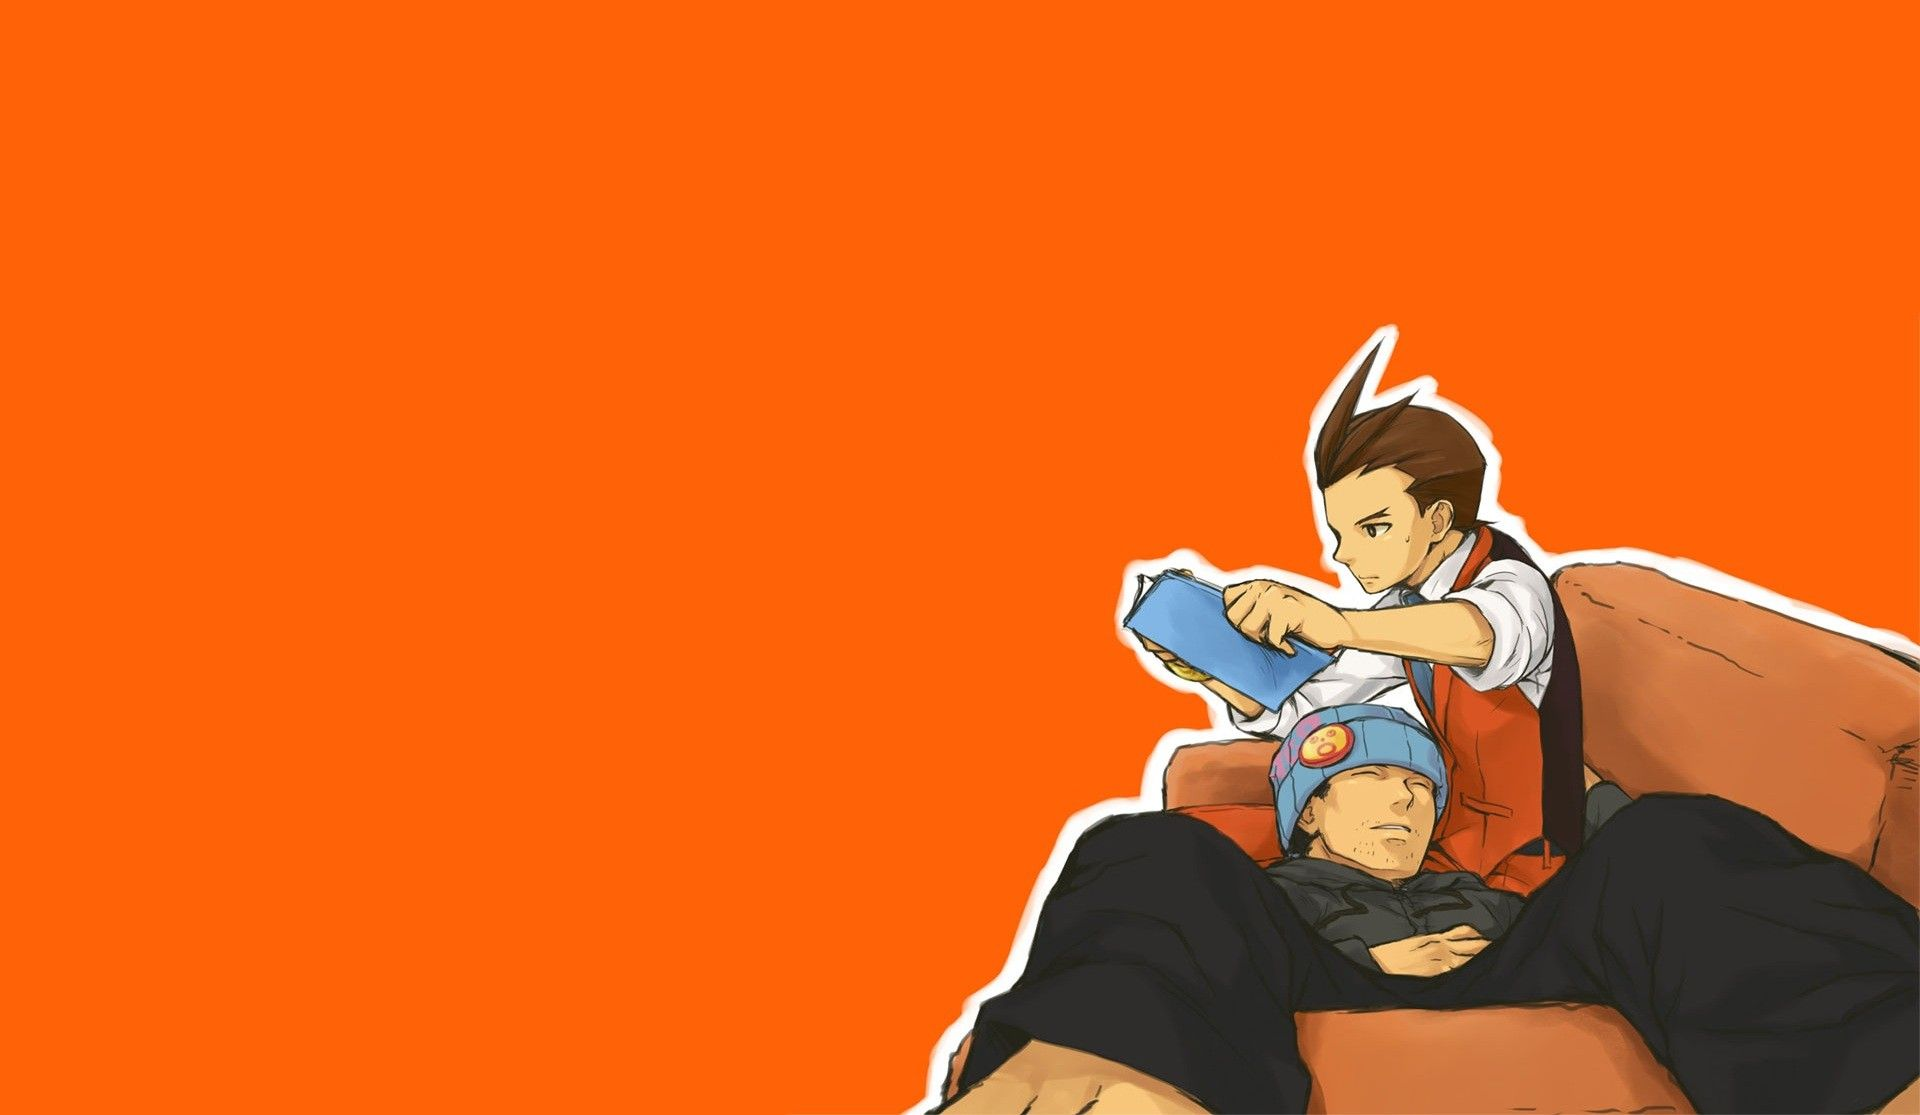 Ace Attorney Wallpaper Phoenix Wright Ace Wallpapers 1280x1024